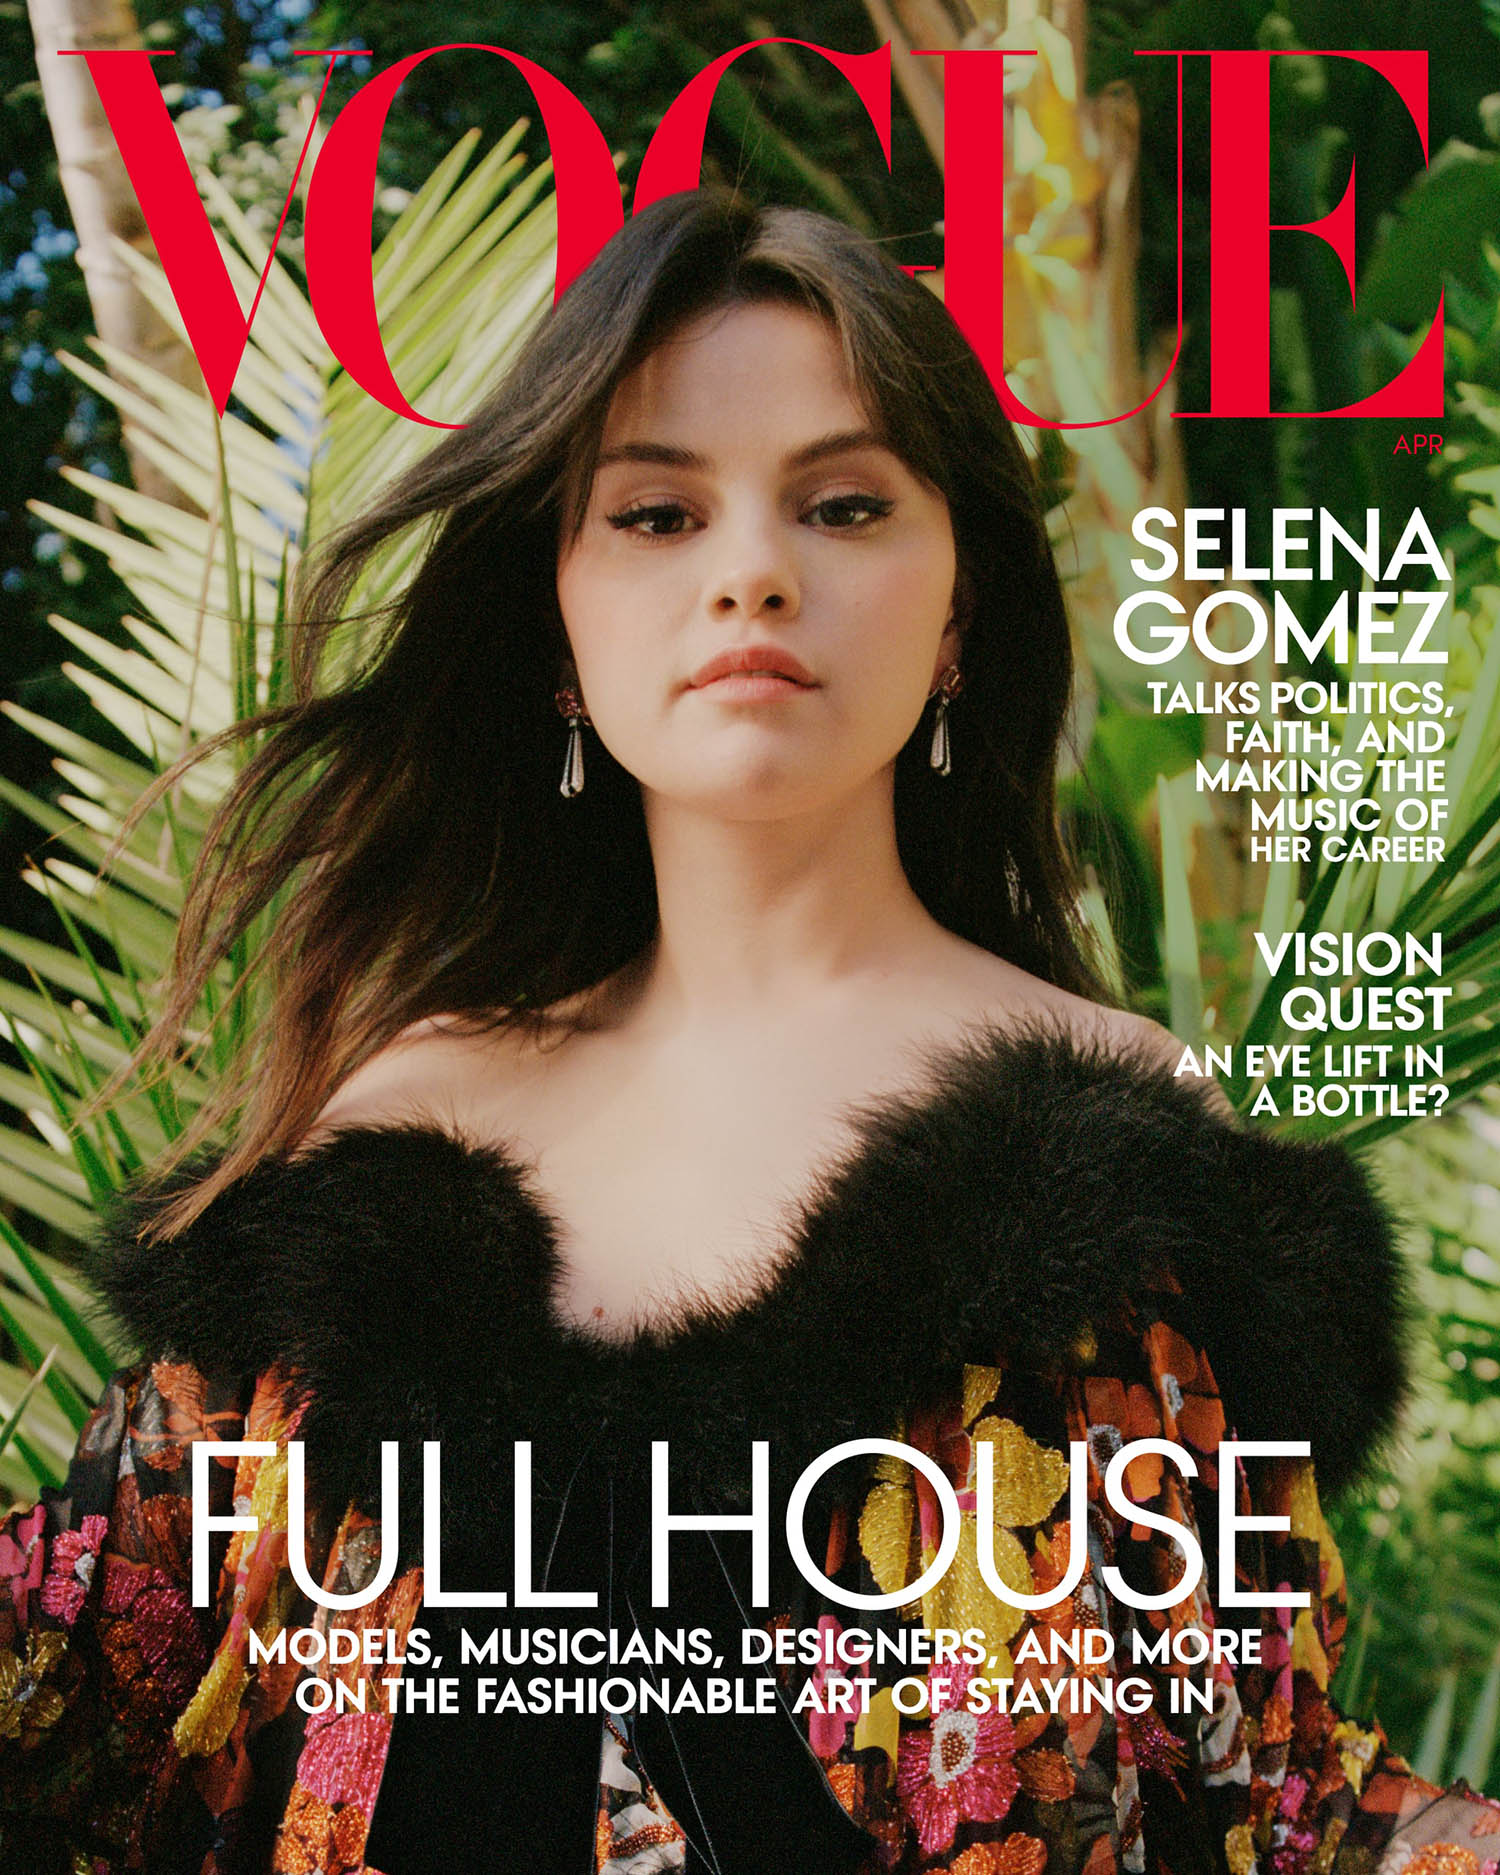 Selena Gomez covers Vogue US April 2021 by Nadine Ijewere